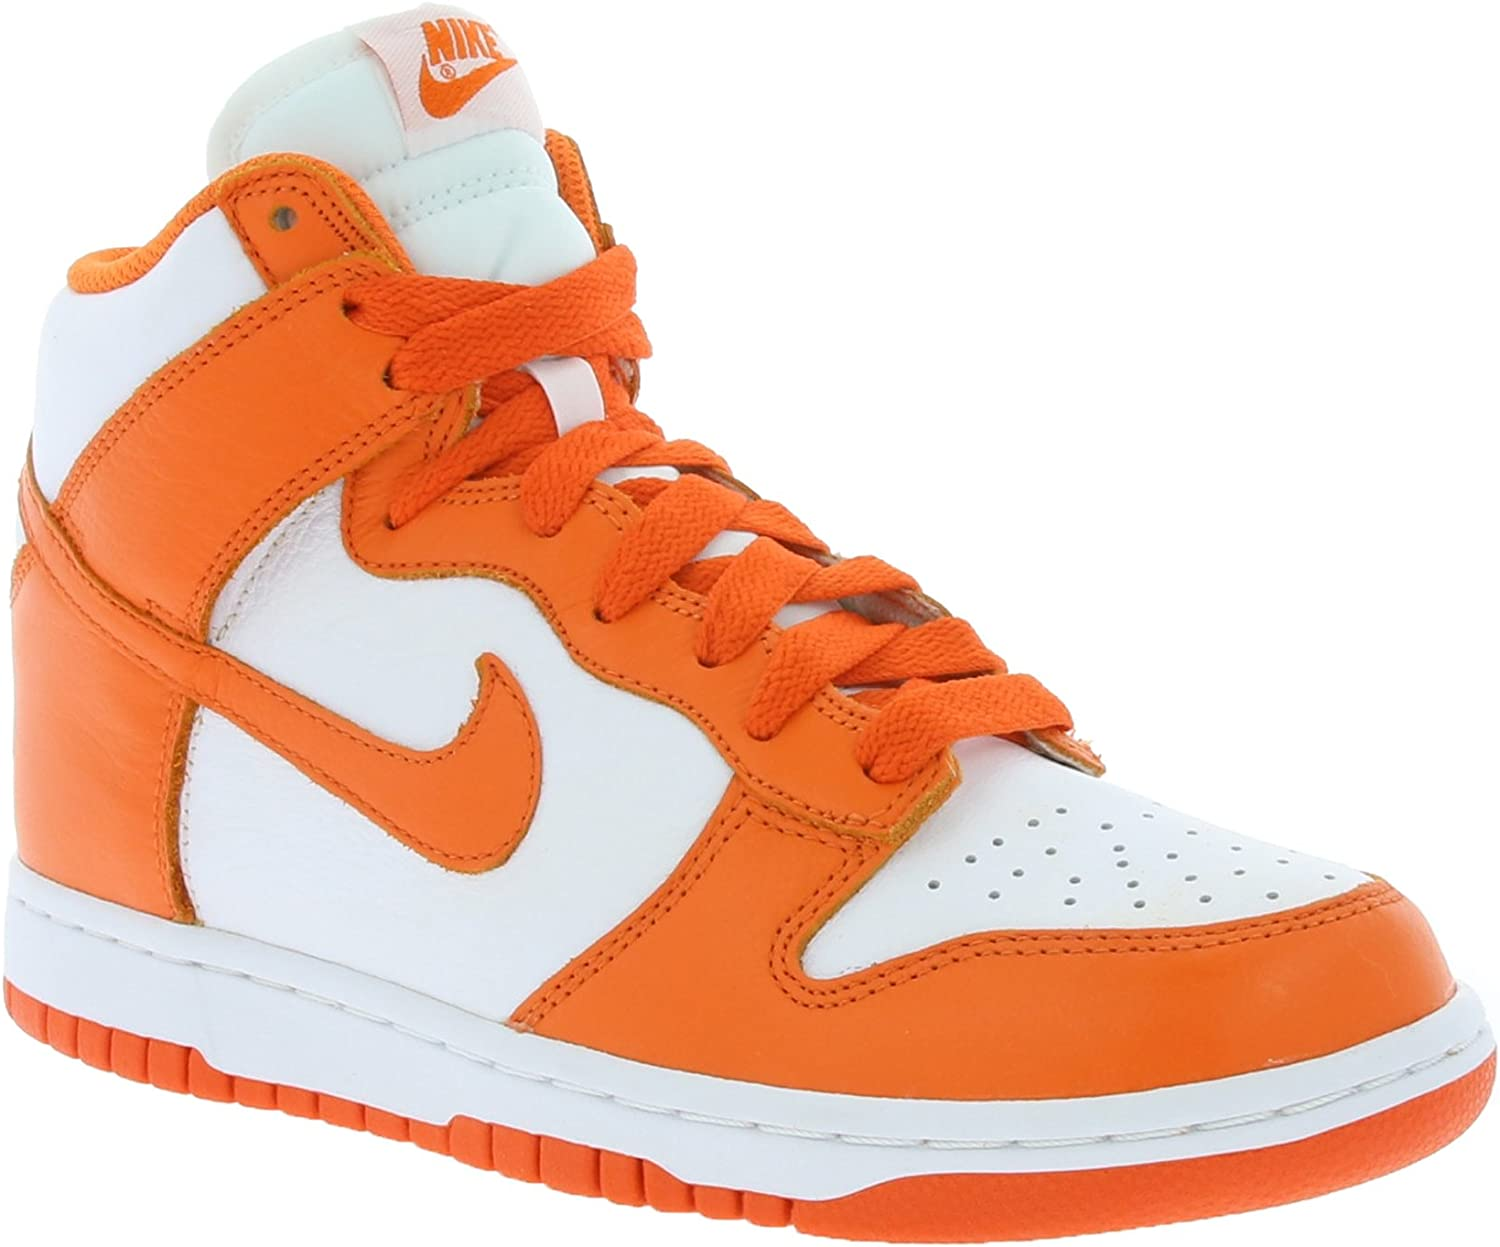 Nike Women's WMNS Dunk Retro QS, White orange Blaze